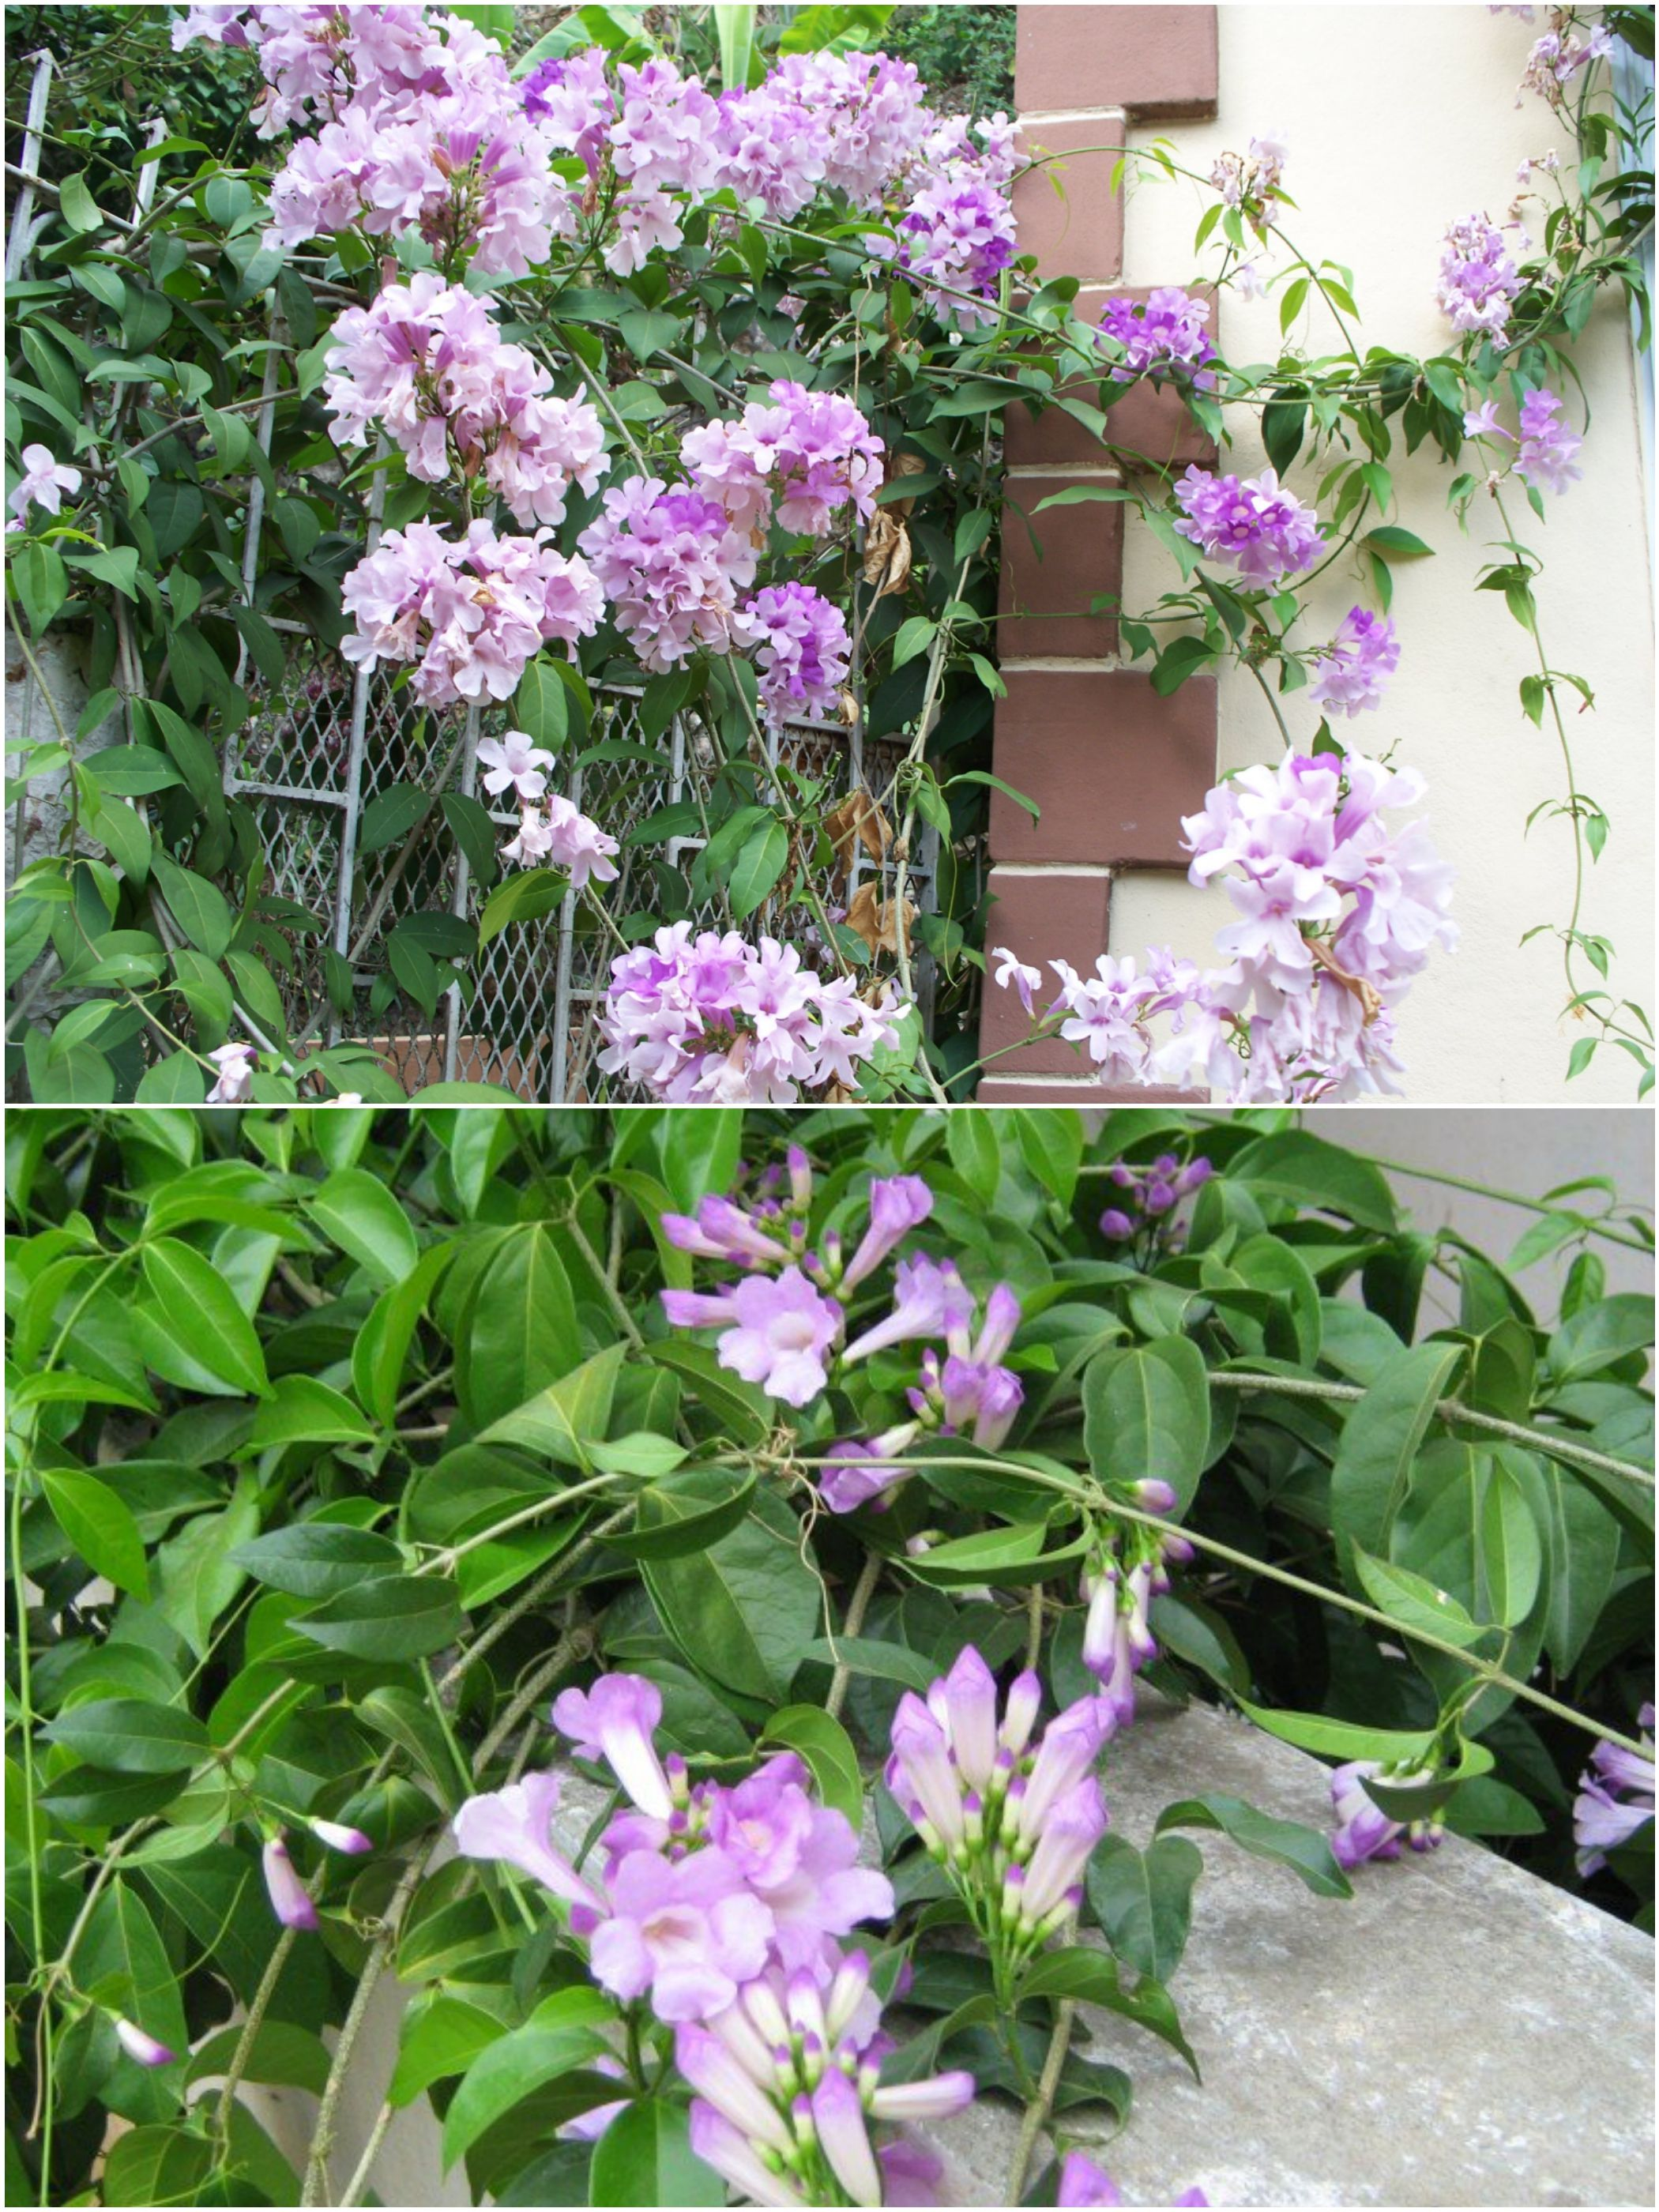 Garlic Vine Flower Flowers Of Bangladesh Pinterest Vines